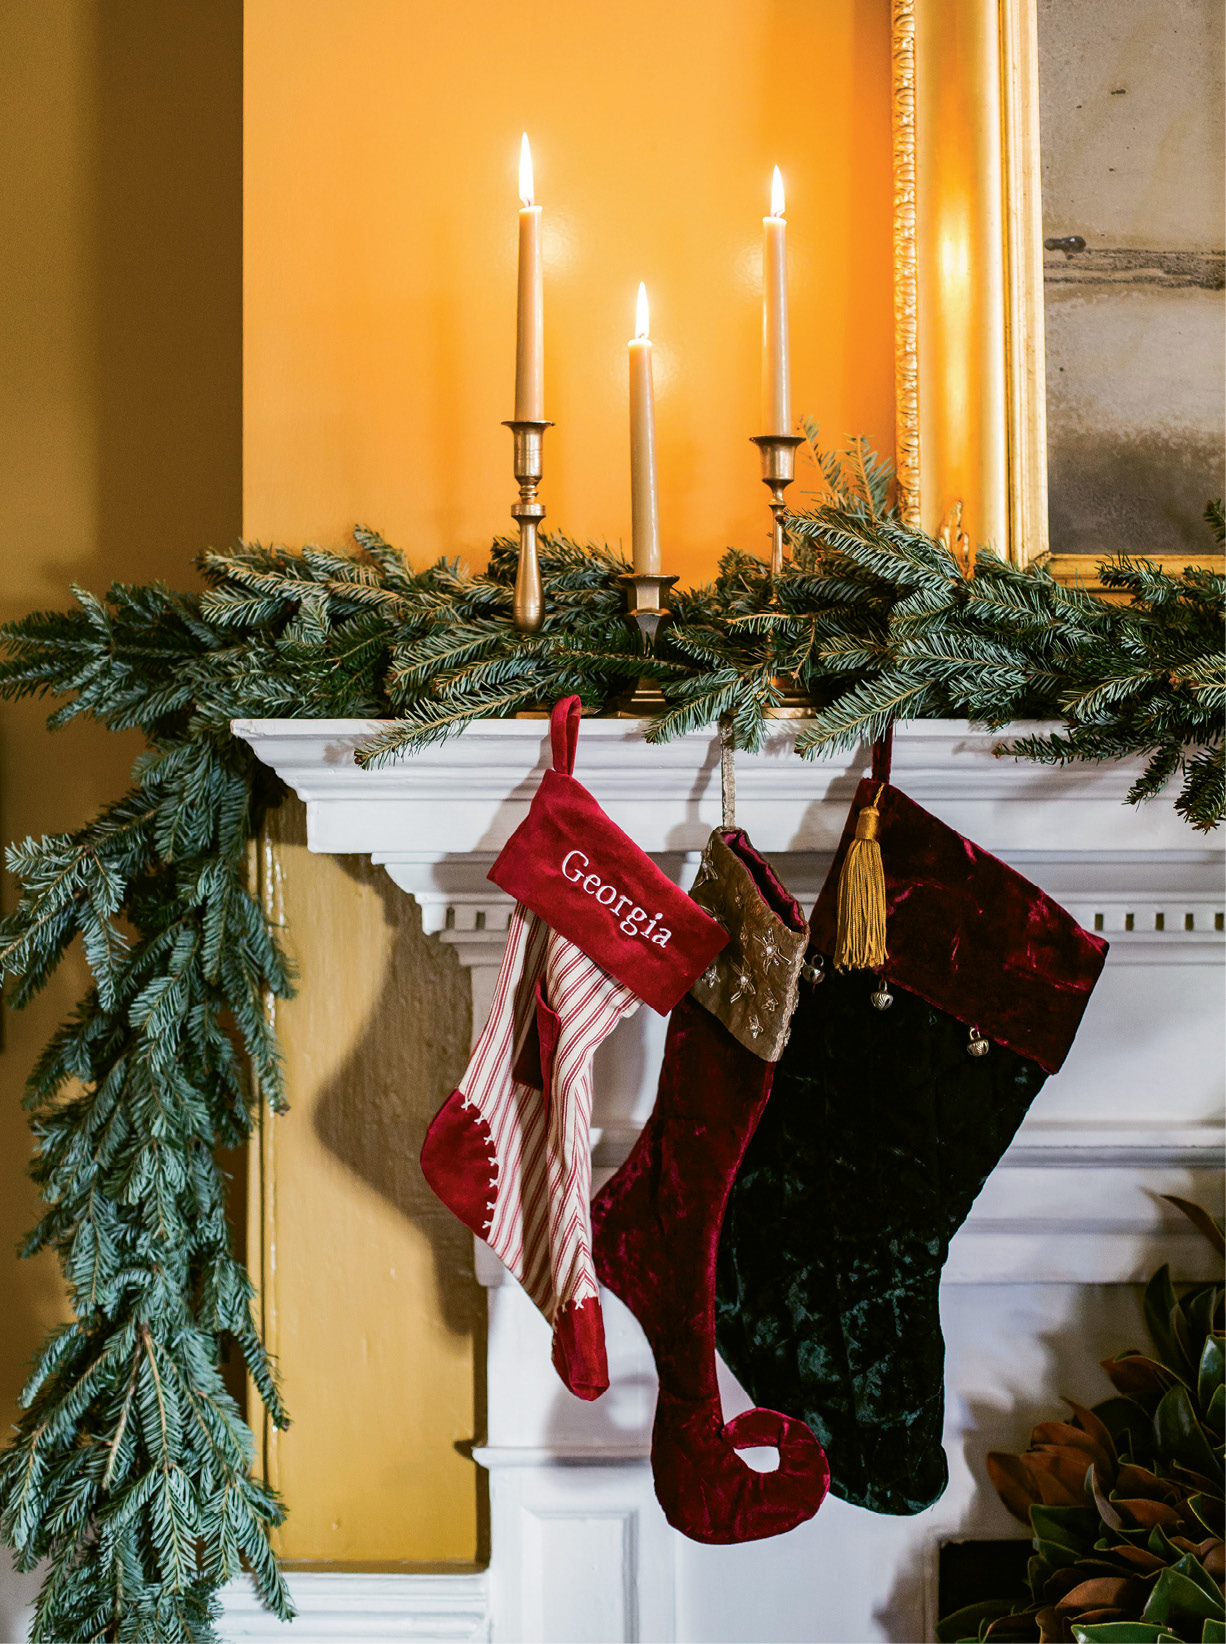 """HANG WITH CARE: Simply weaving garlands amid mantel decorations works for Tara, as does lighting candles. """"Just don't burn scented candles around food,"""" she says."""